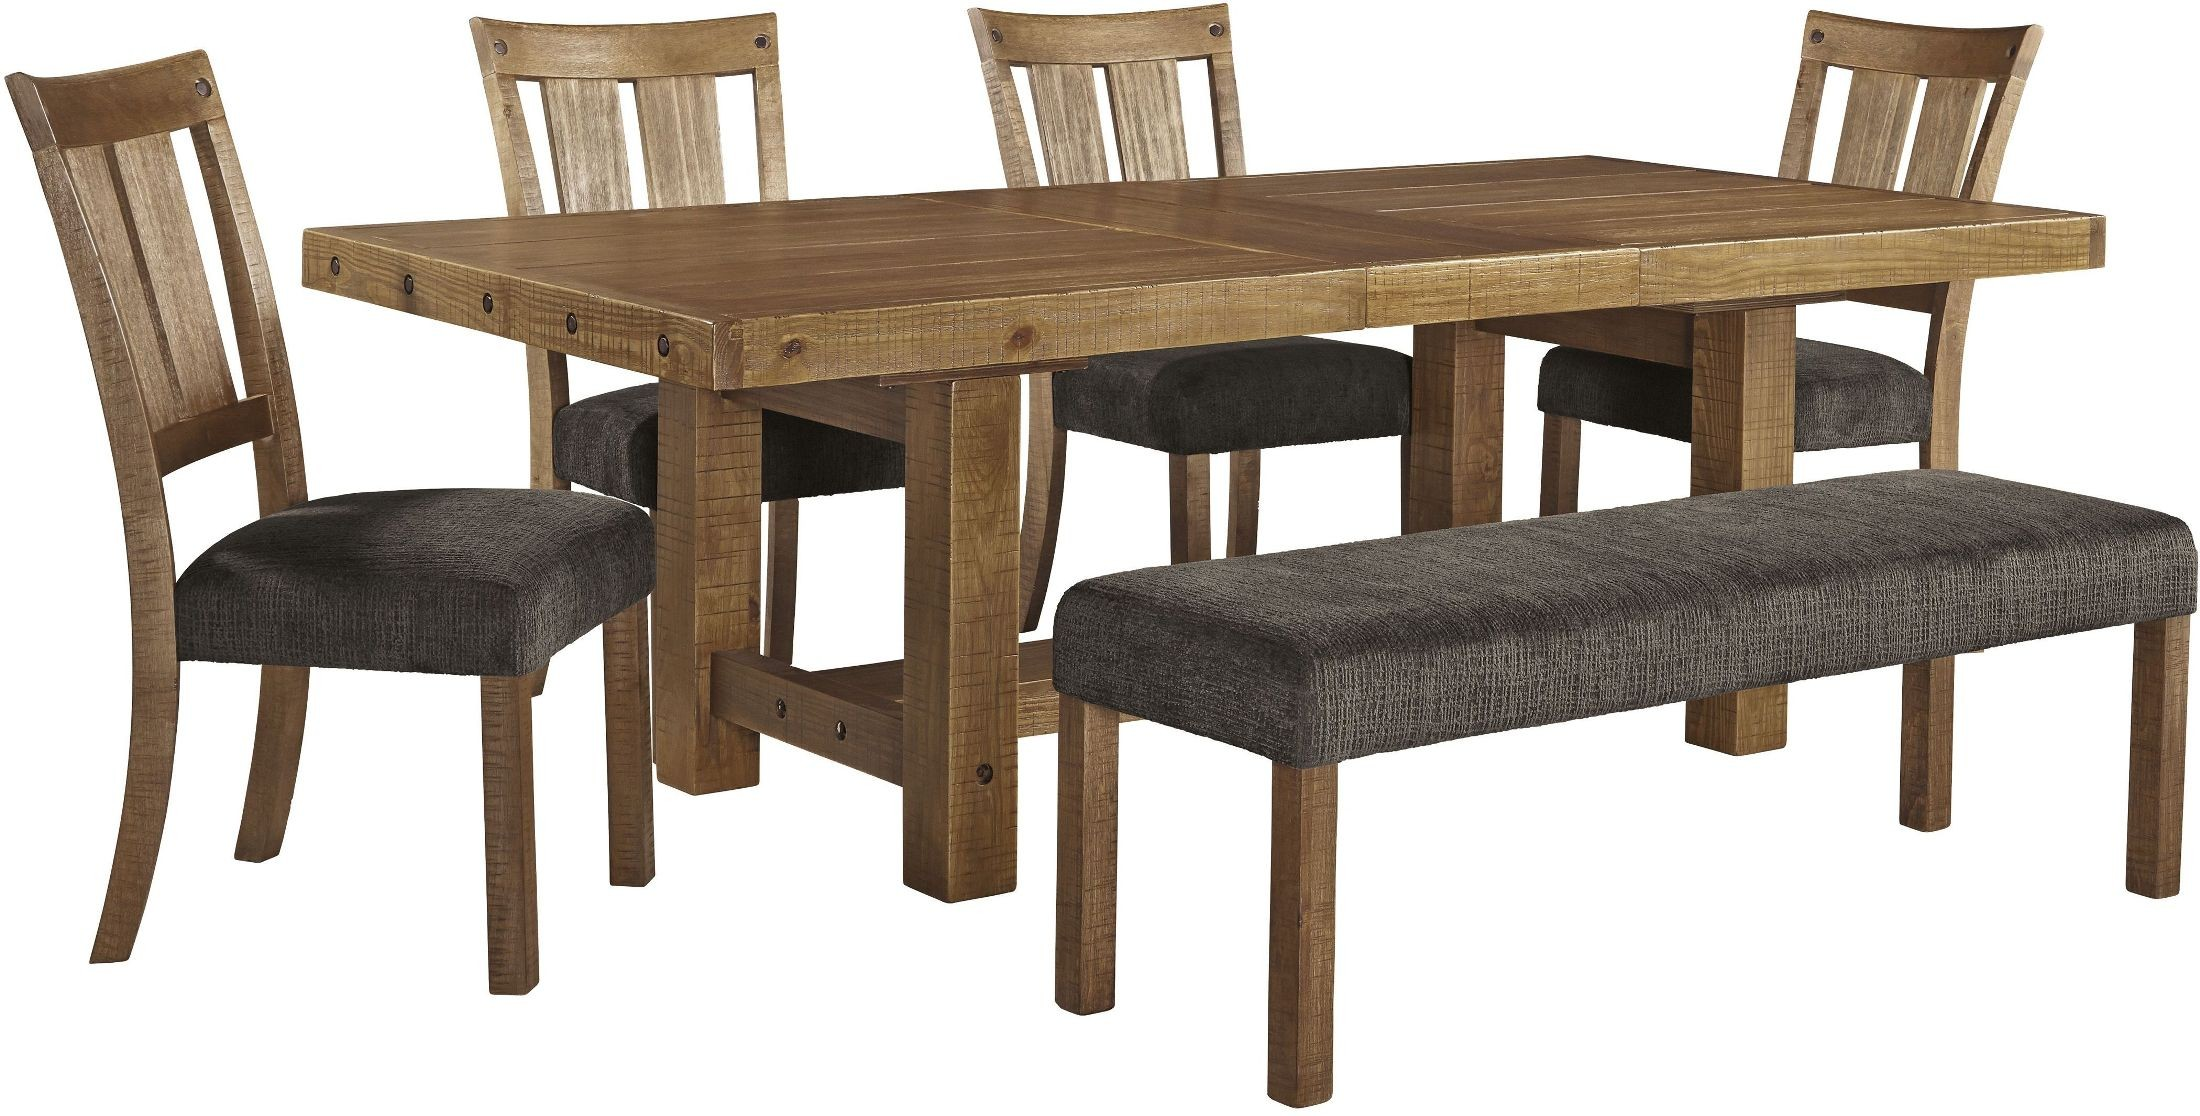 tamilo gray brown rectangular extendable dining room set from ashley d714 45 coleman furniture. Black Bedroom Furniture Sets. Home Design Ideas